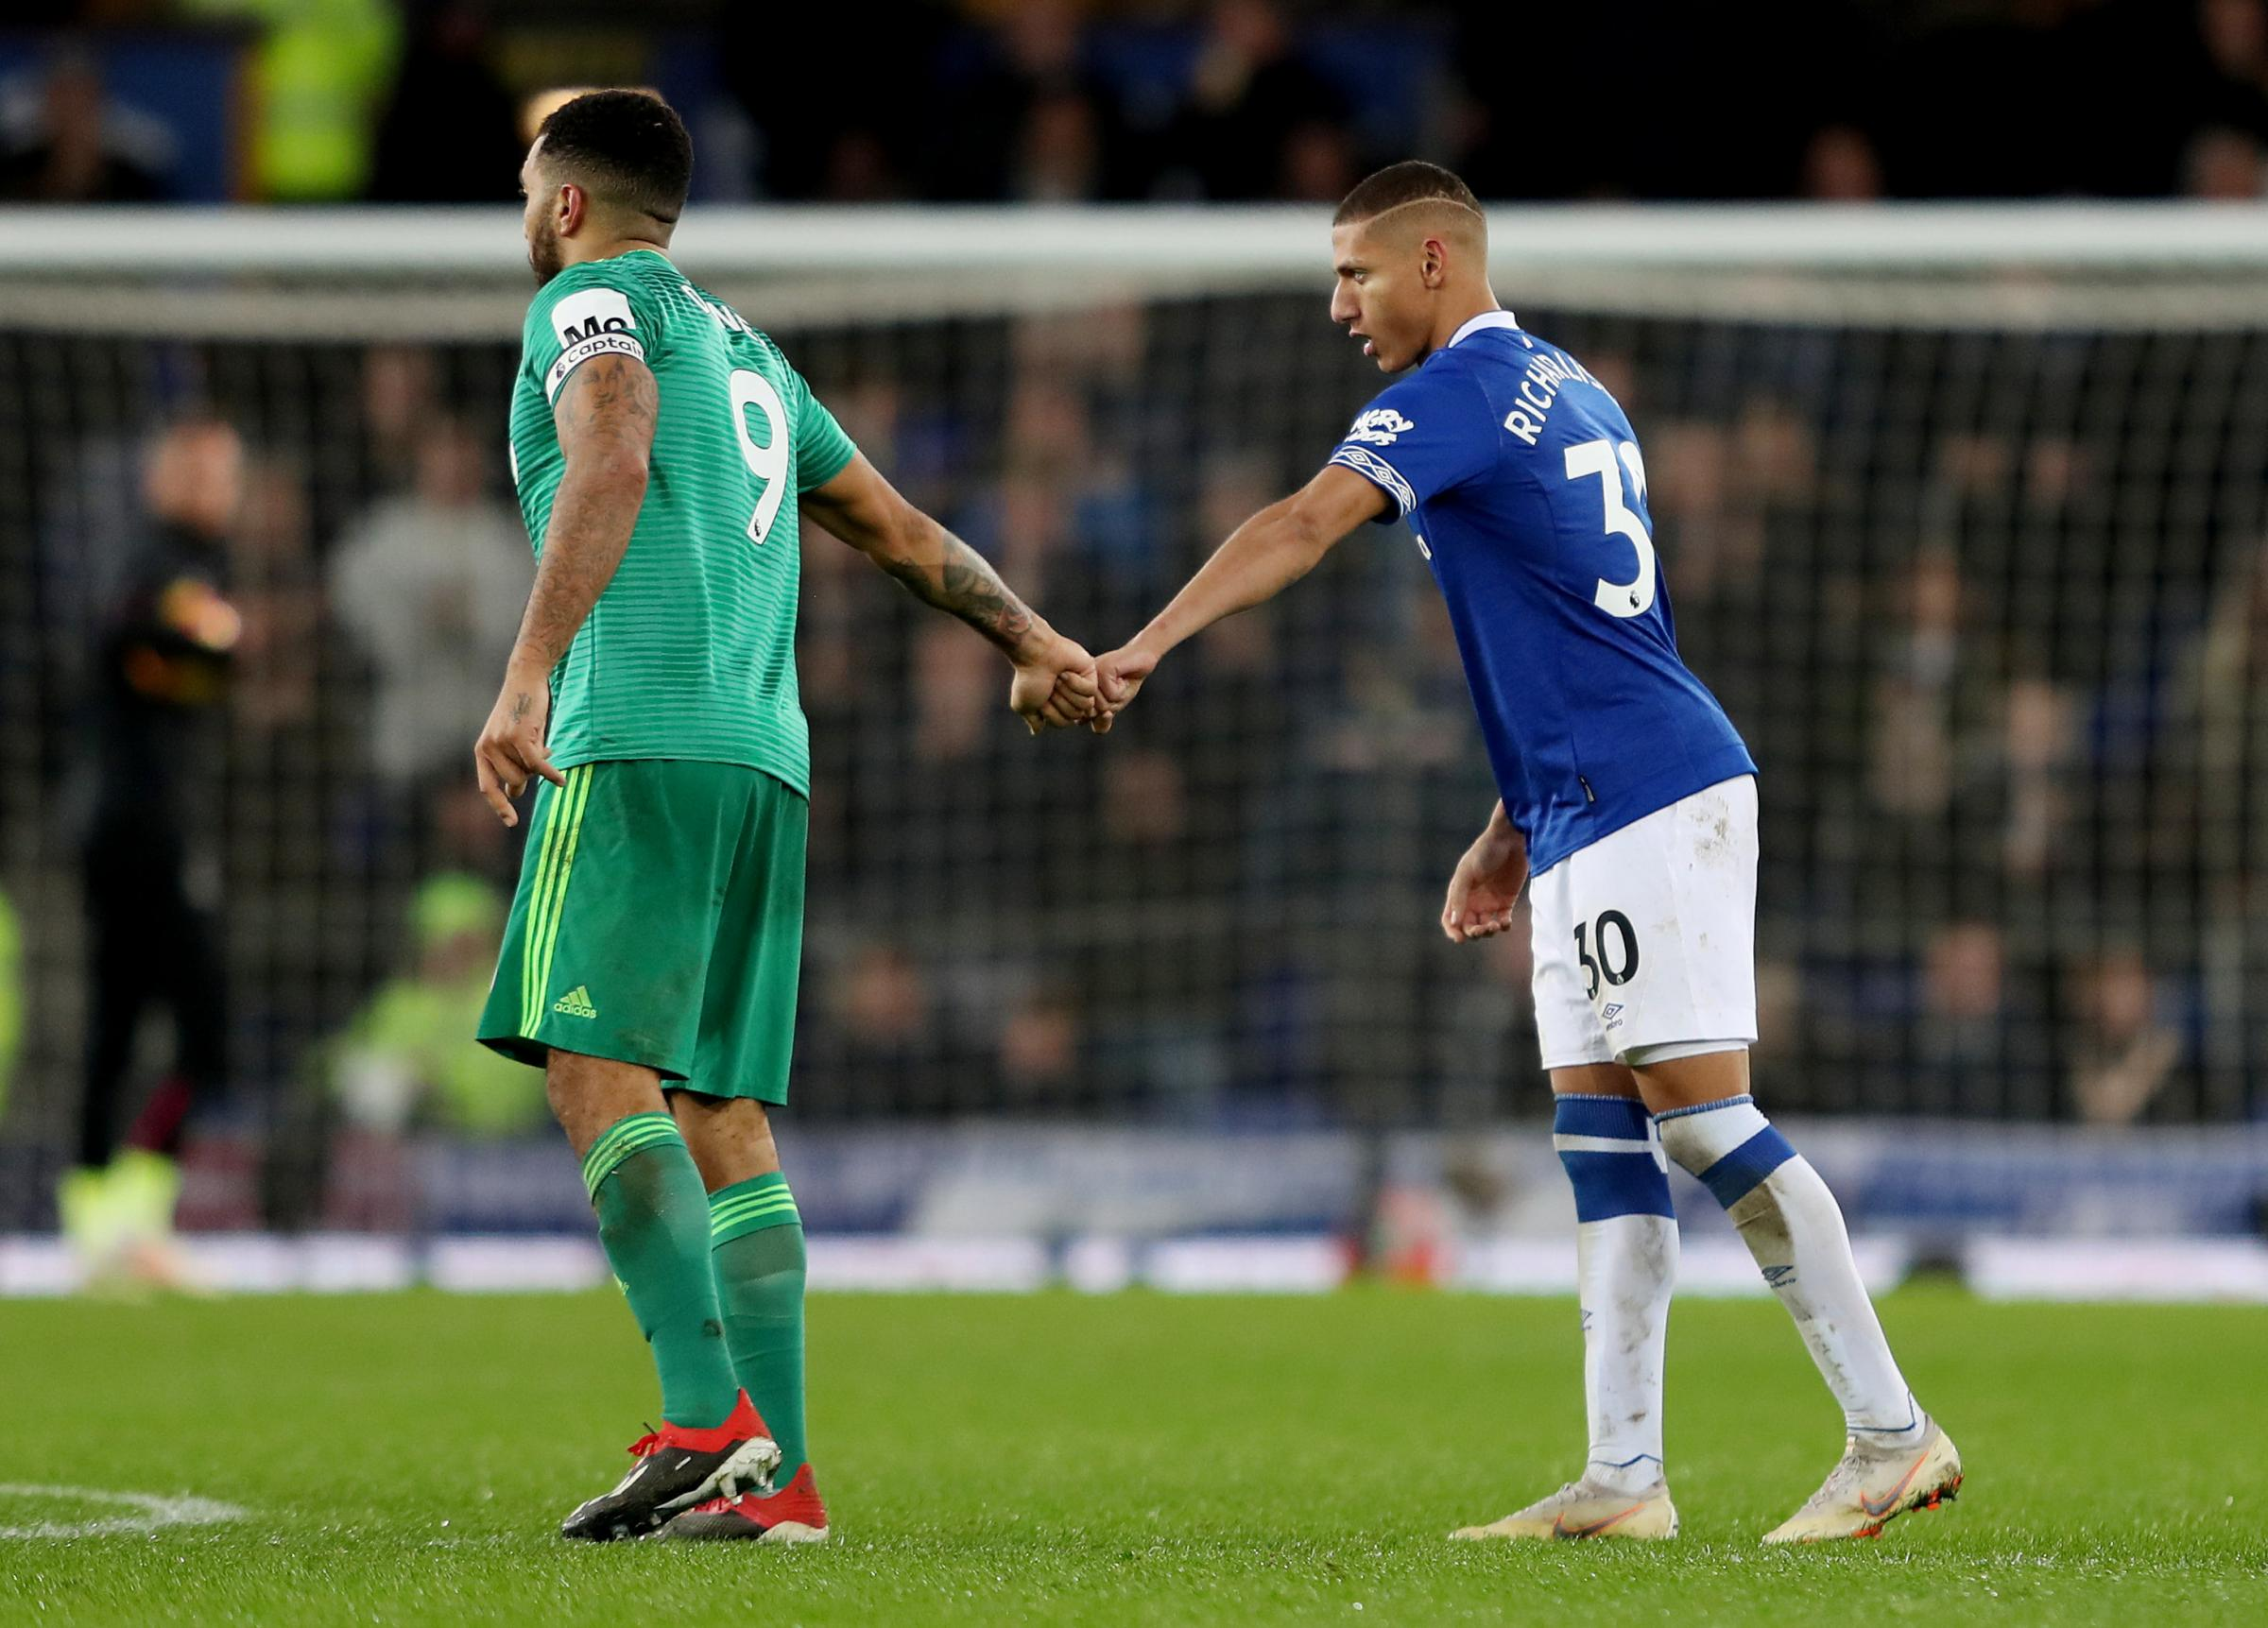 Respect: Troy Deeney and Richarlison during the 2-2 at Goodison Park in December. Picture: Action Images